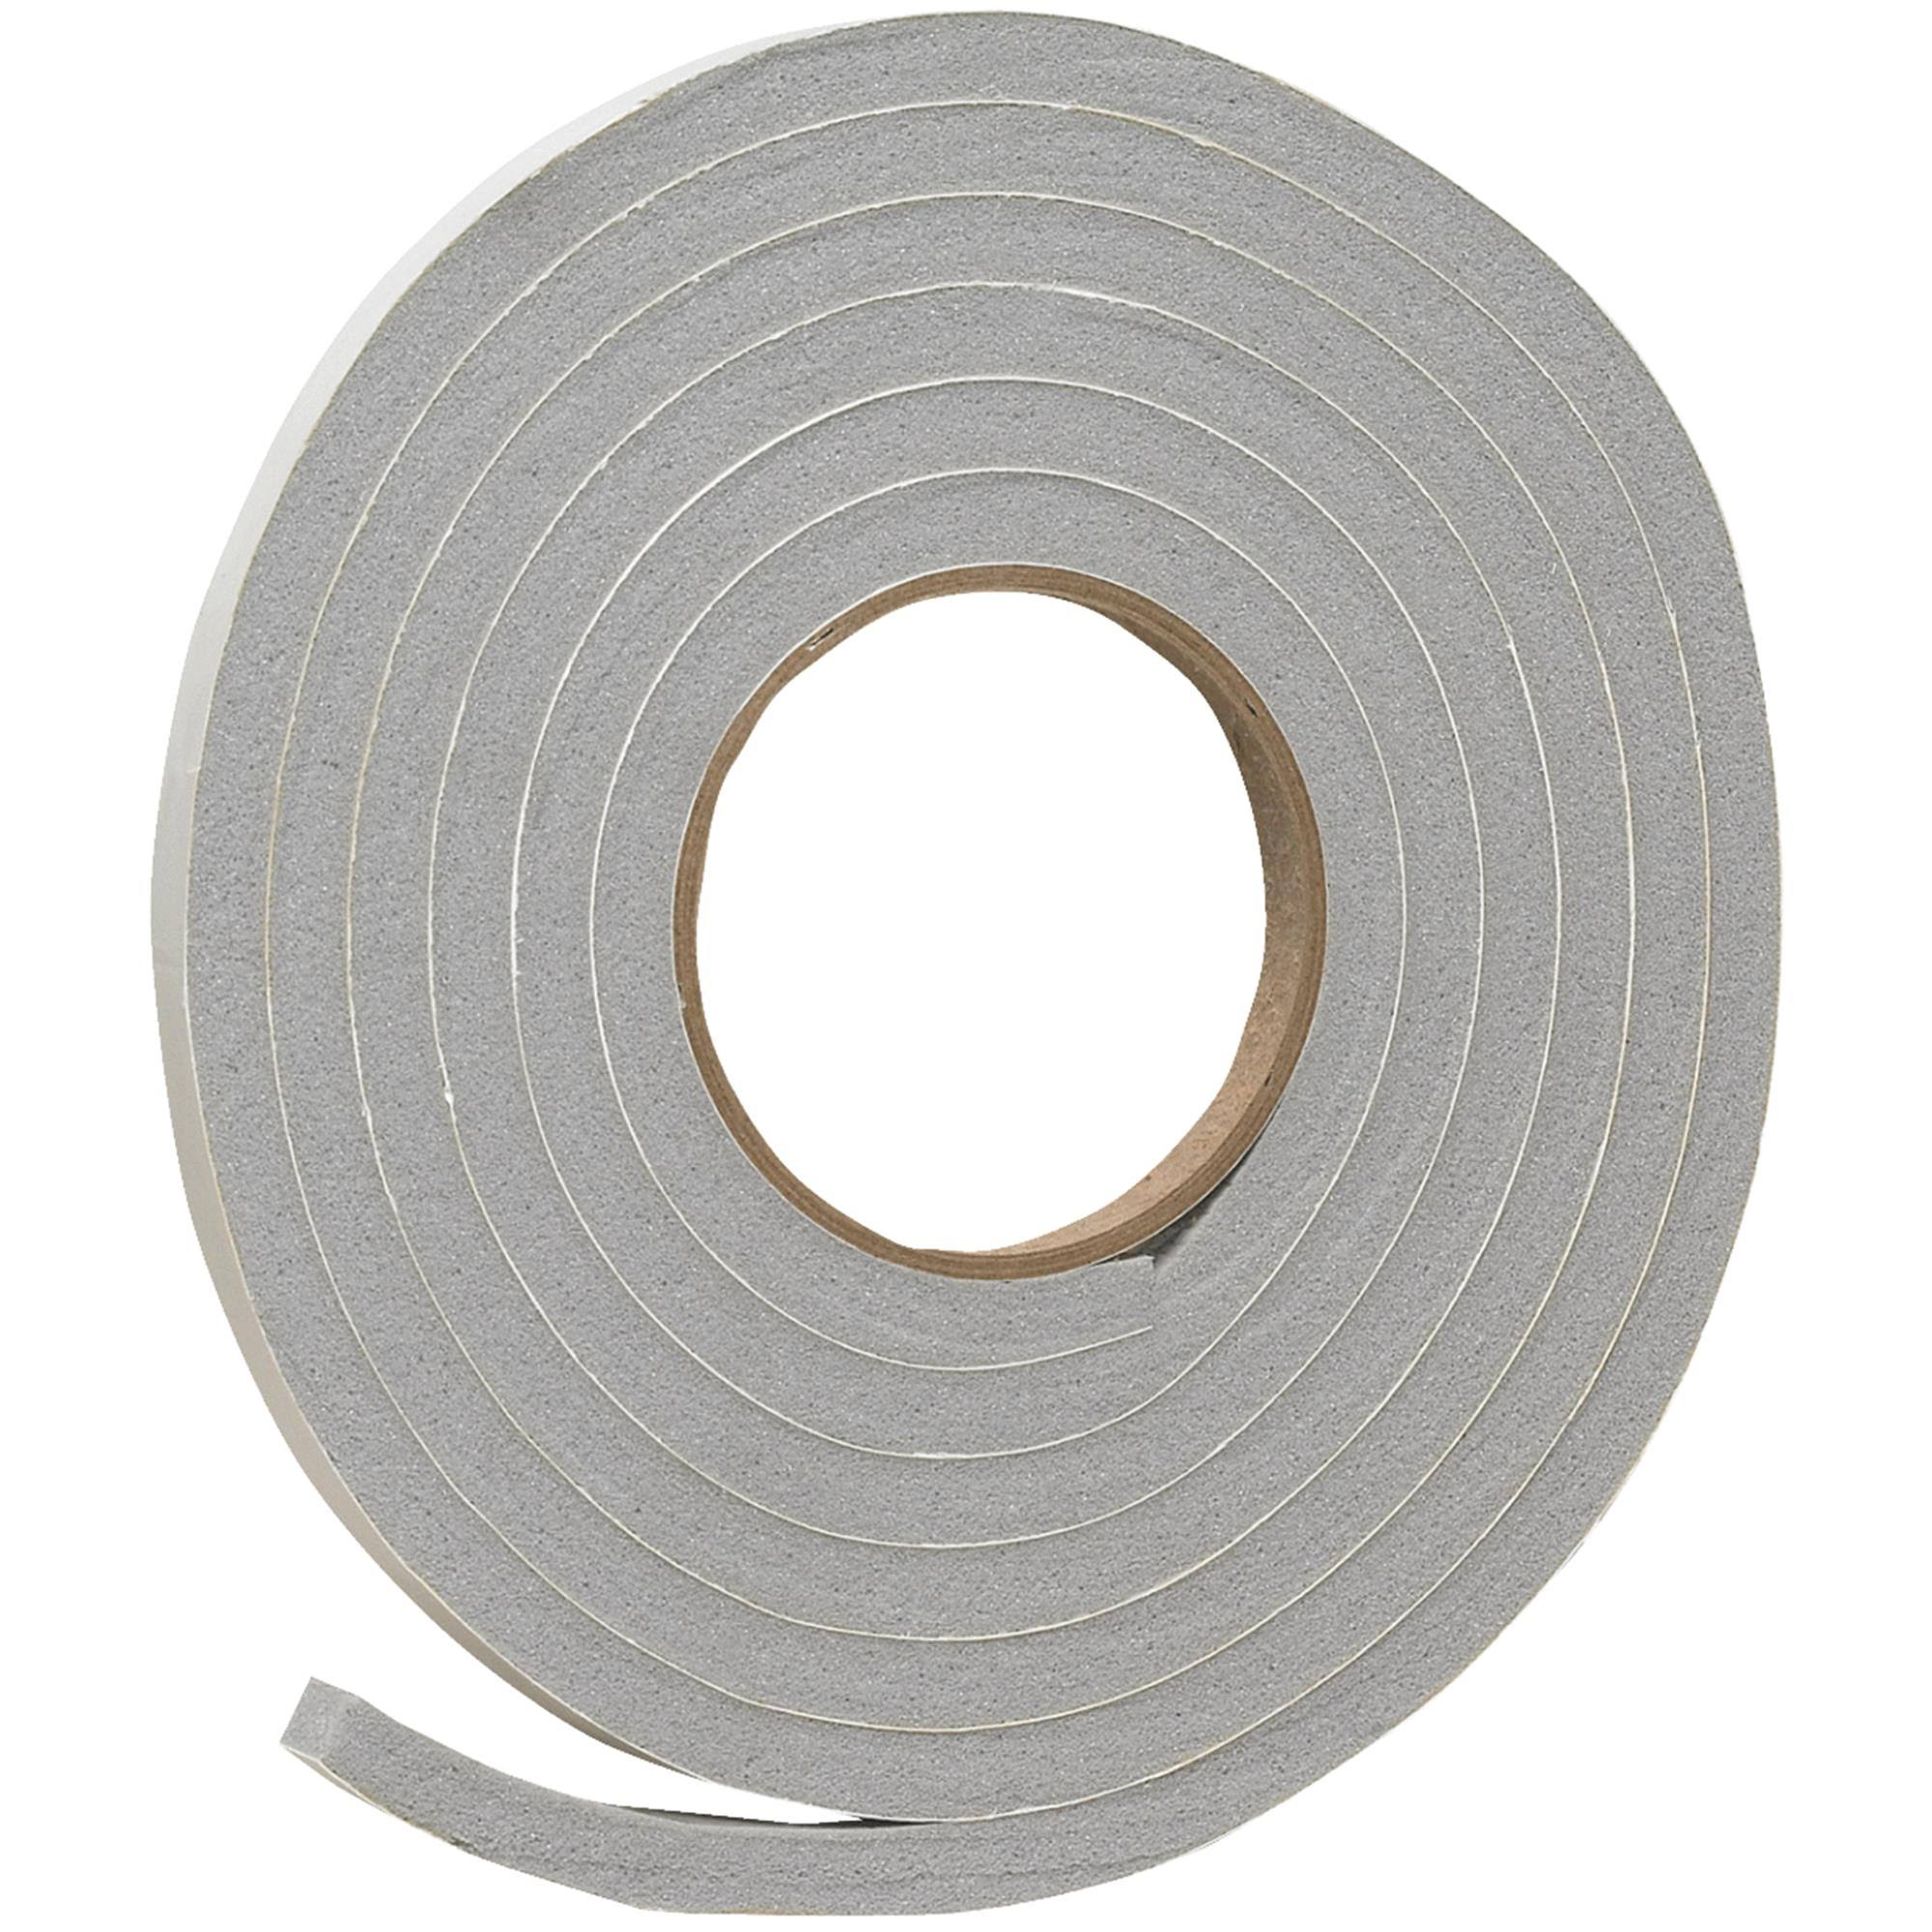 Thermwell V445hdi Do It PVC Closed Cell Vinyl Foam Weatherstrip Tape - Gray